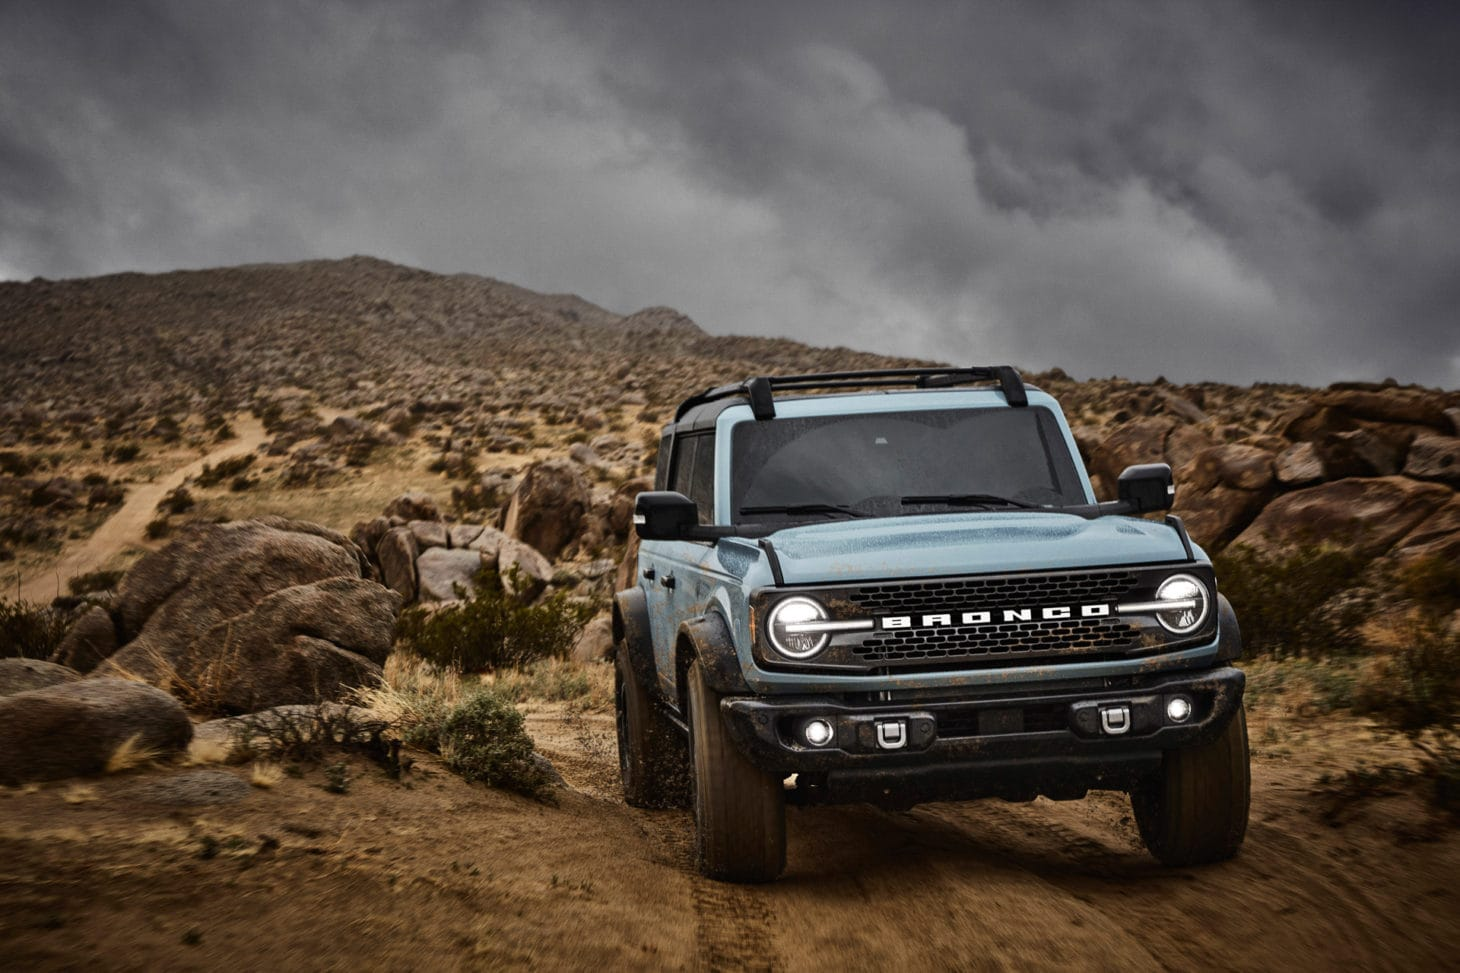 Ford Bronco concept vehicle off-roading